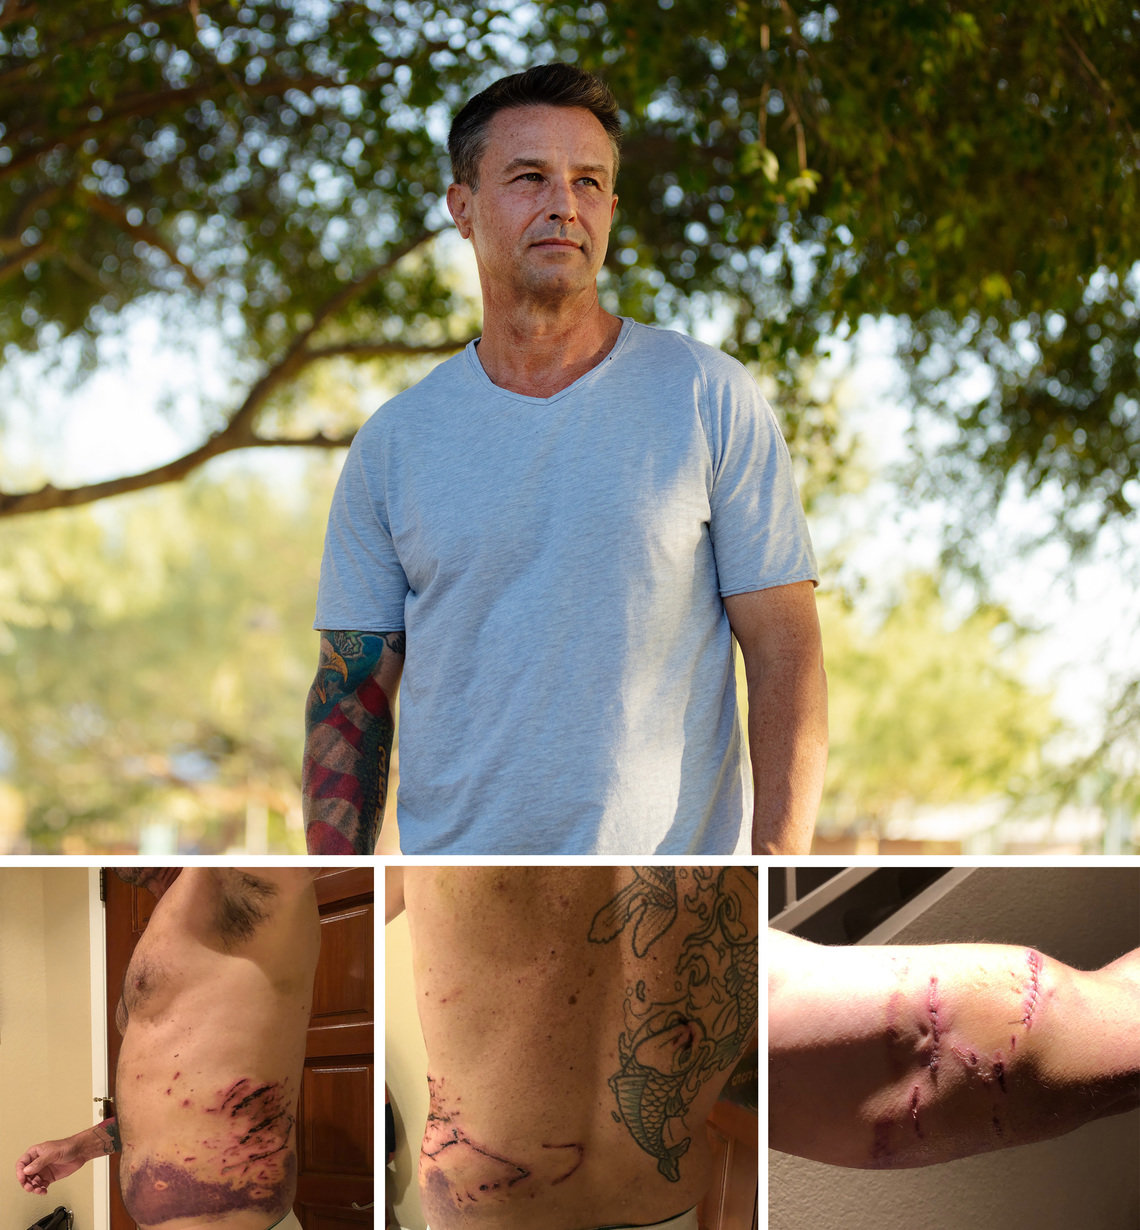 A police dog mauled Patrick Gibbons in Scottsdale, Arizona, in May 2019. The photos below, which Gibbons said were taken about a week after the incident, show his injuries from the dog to his torso and arm.